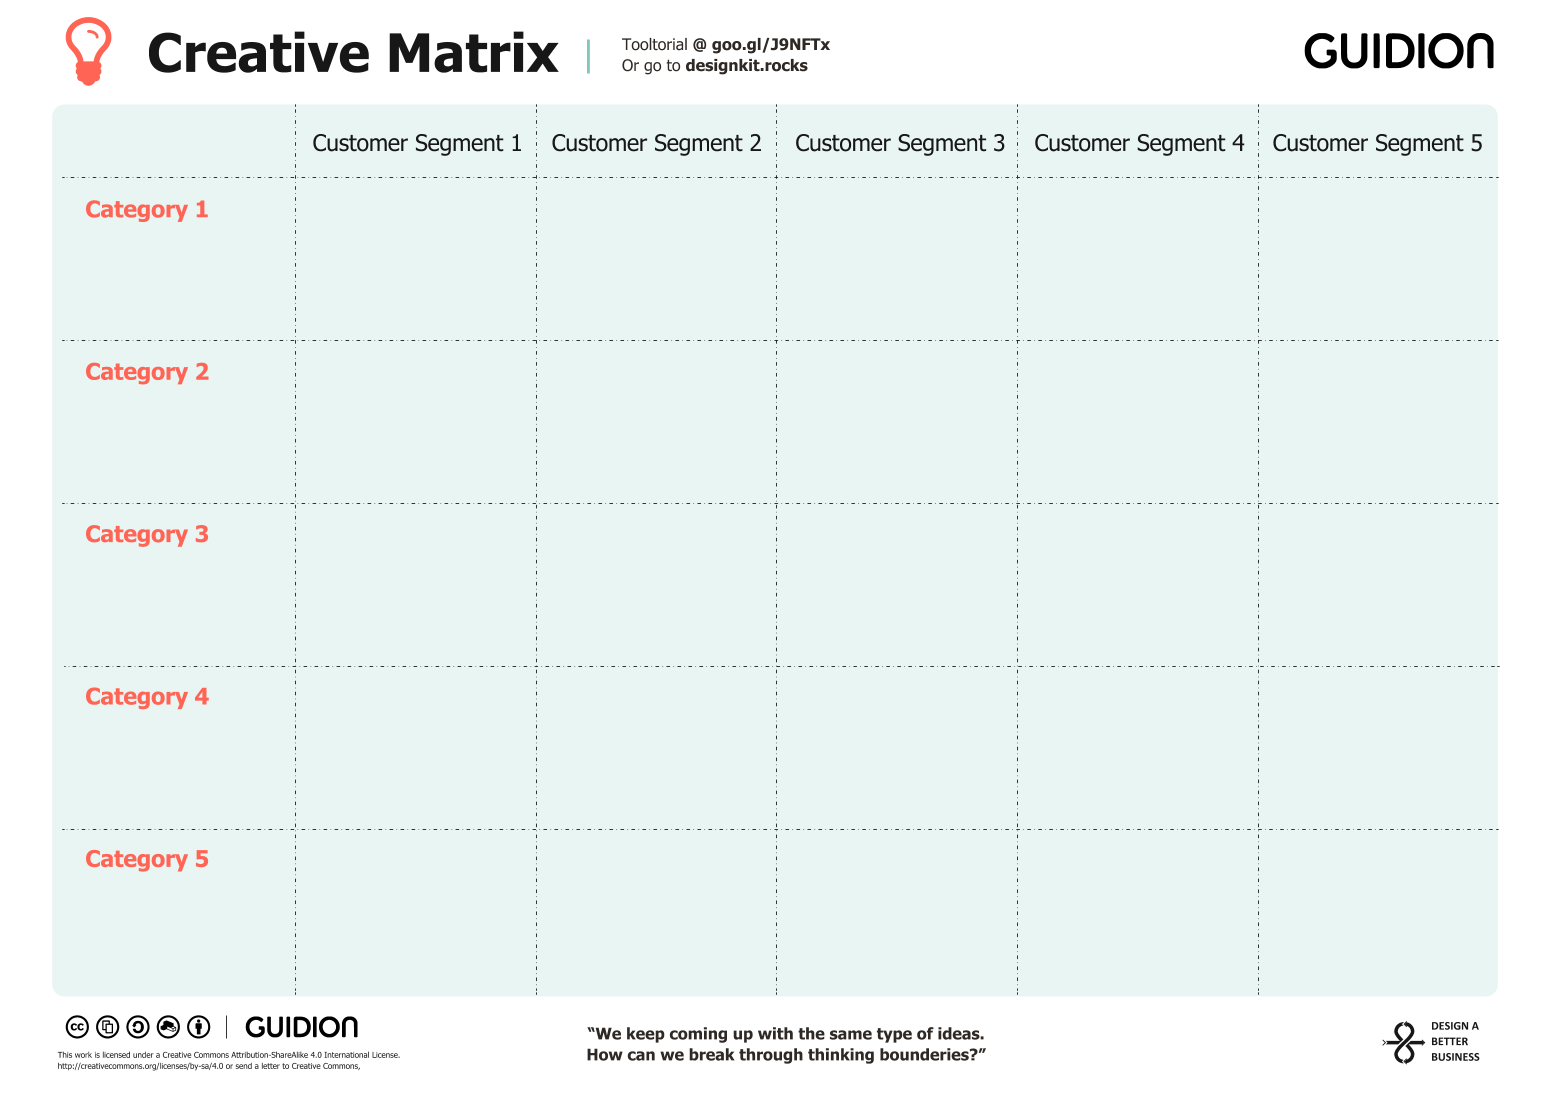 Creative Matrix